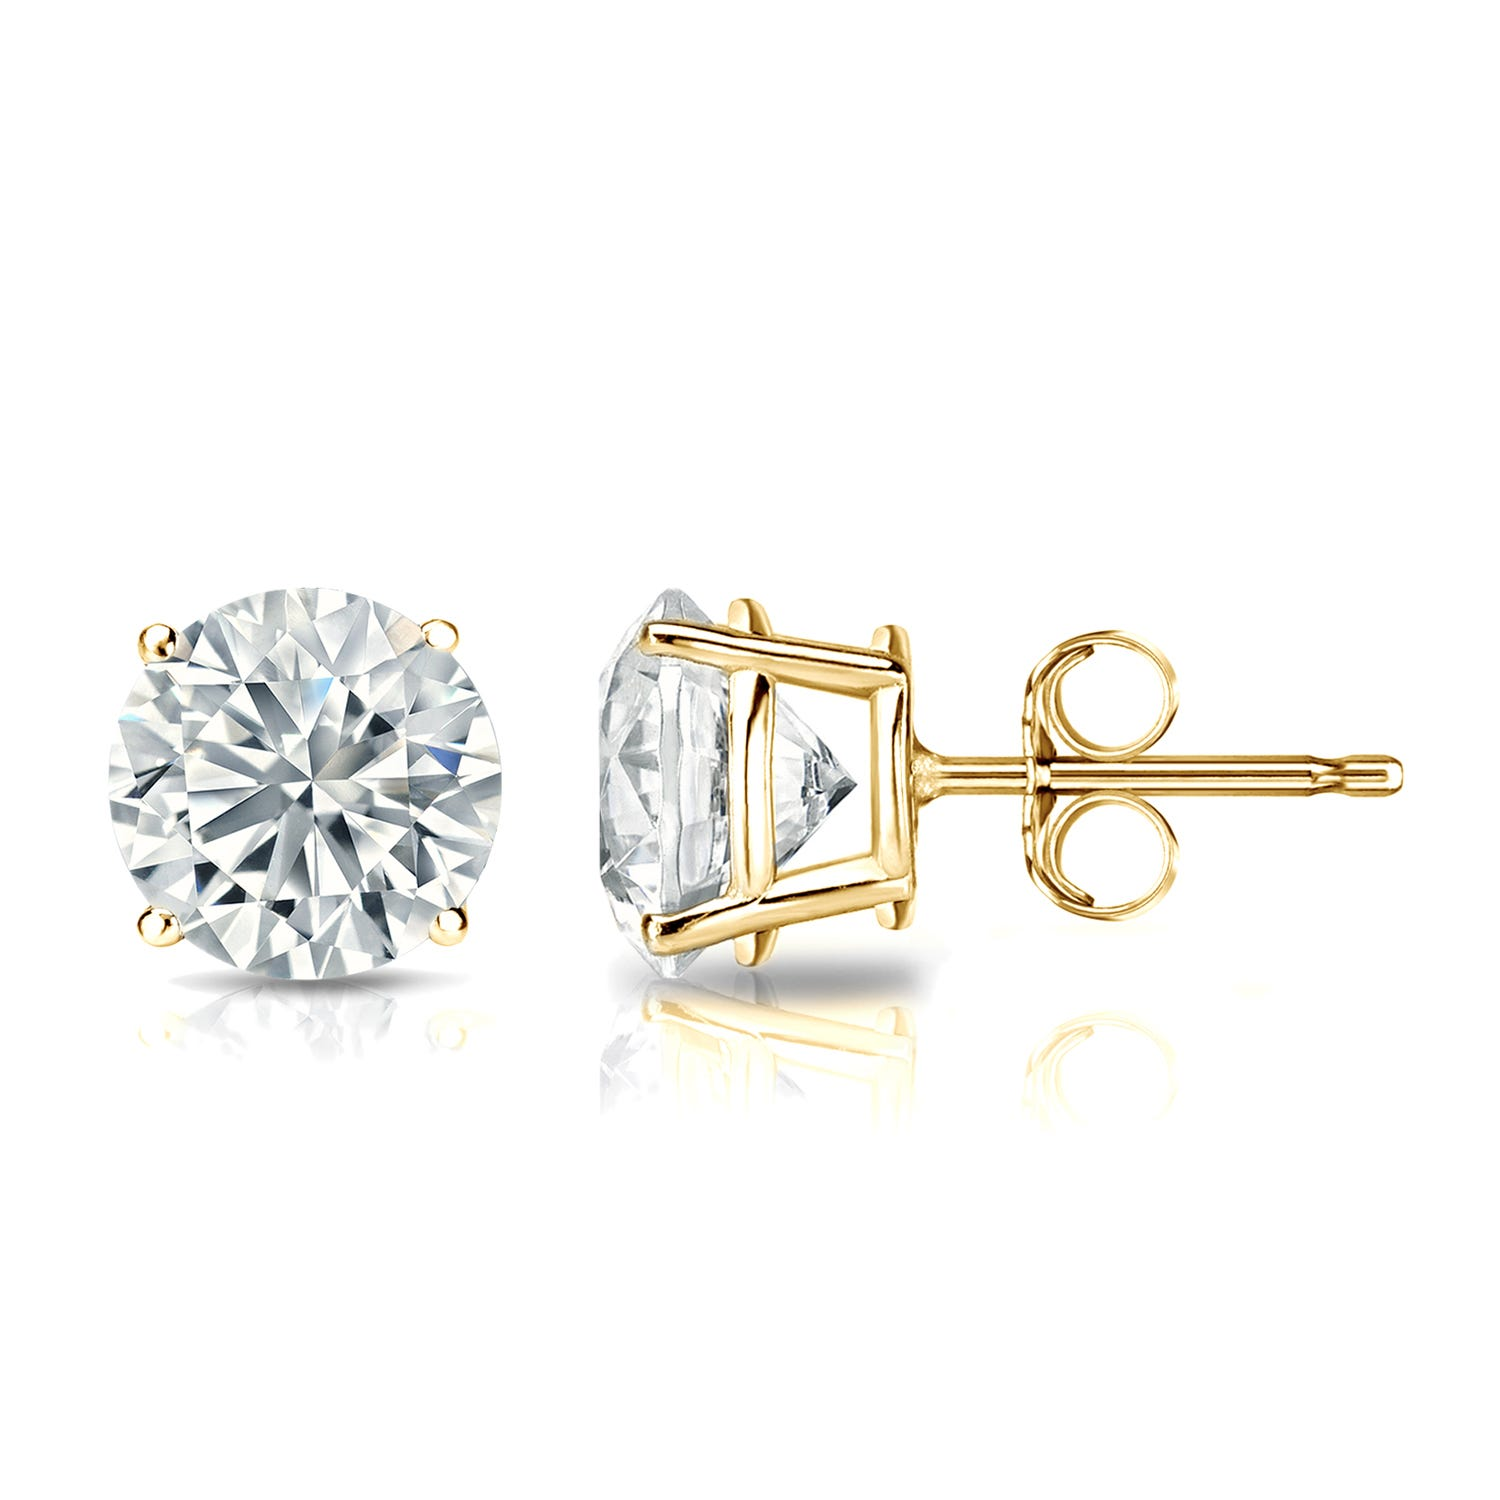 Diamond 1 1/2ctw. Round Solitaire Stud Earrings (I-J, I2) 18k Yellow Gold